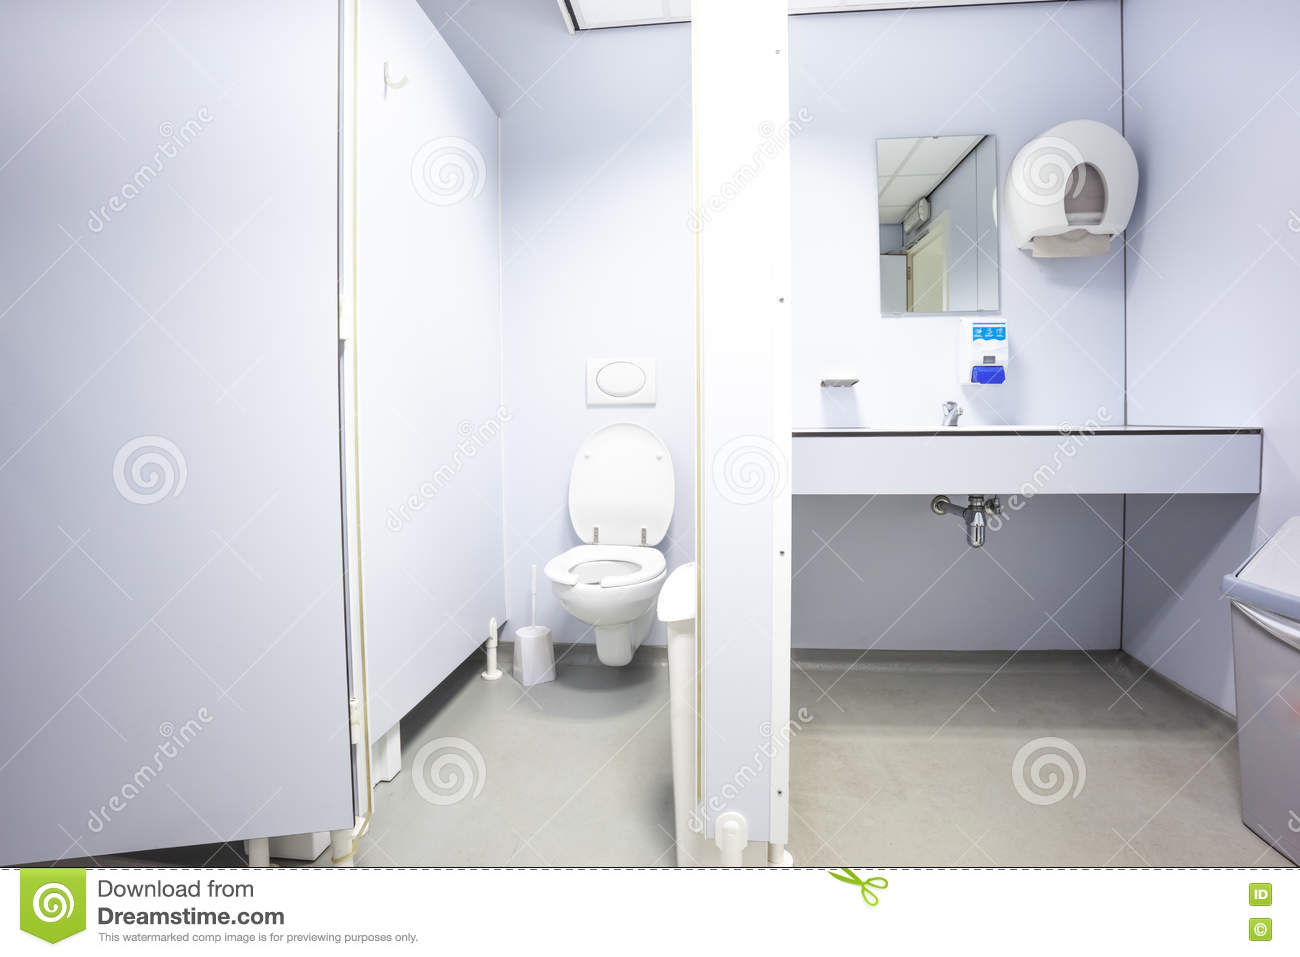 Doors From Toilets And Sinks Stock Image - Image of flush, water ...